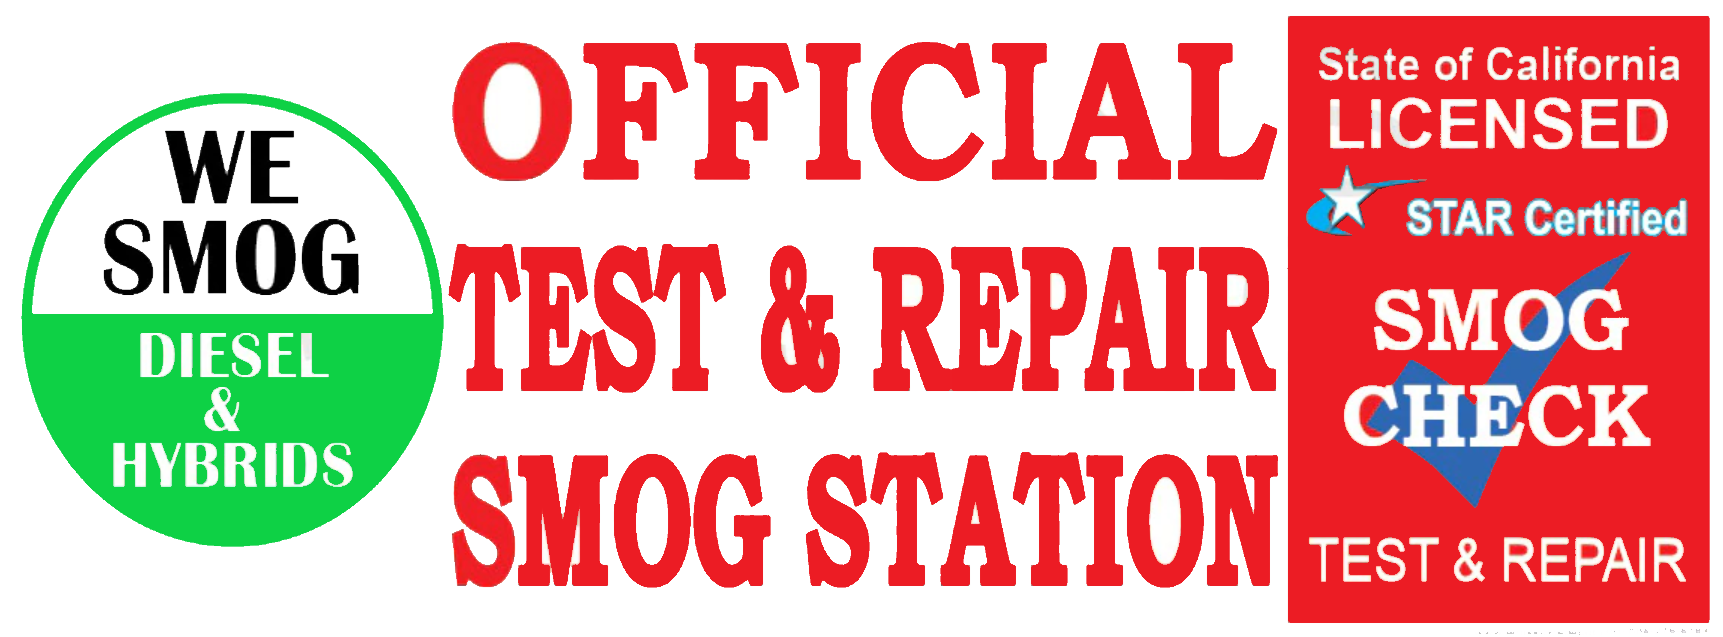 Official Test and Repair Smog Station | We smog Diesel and Hybrids | Red Star Cert | Vinyl Banner